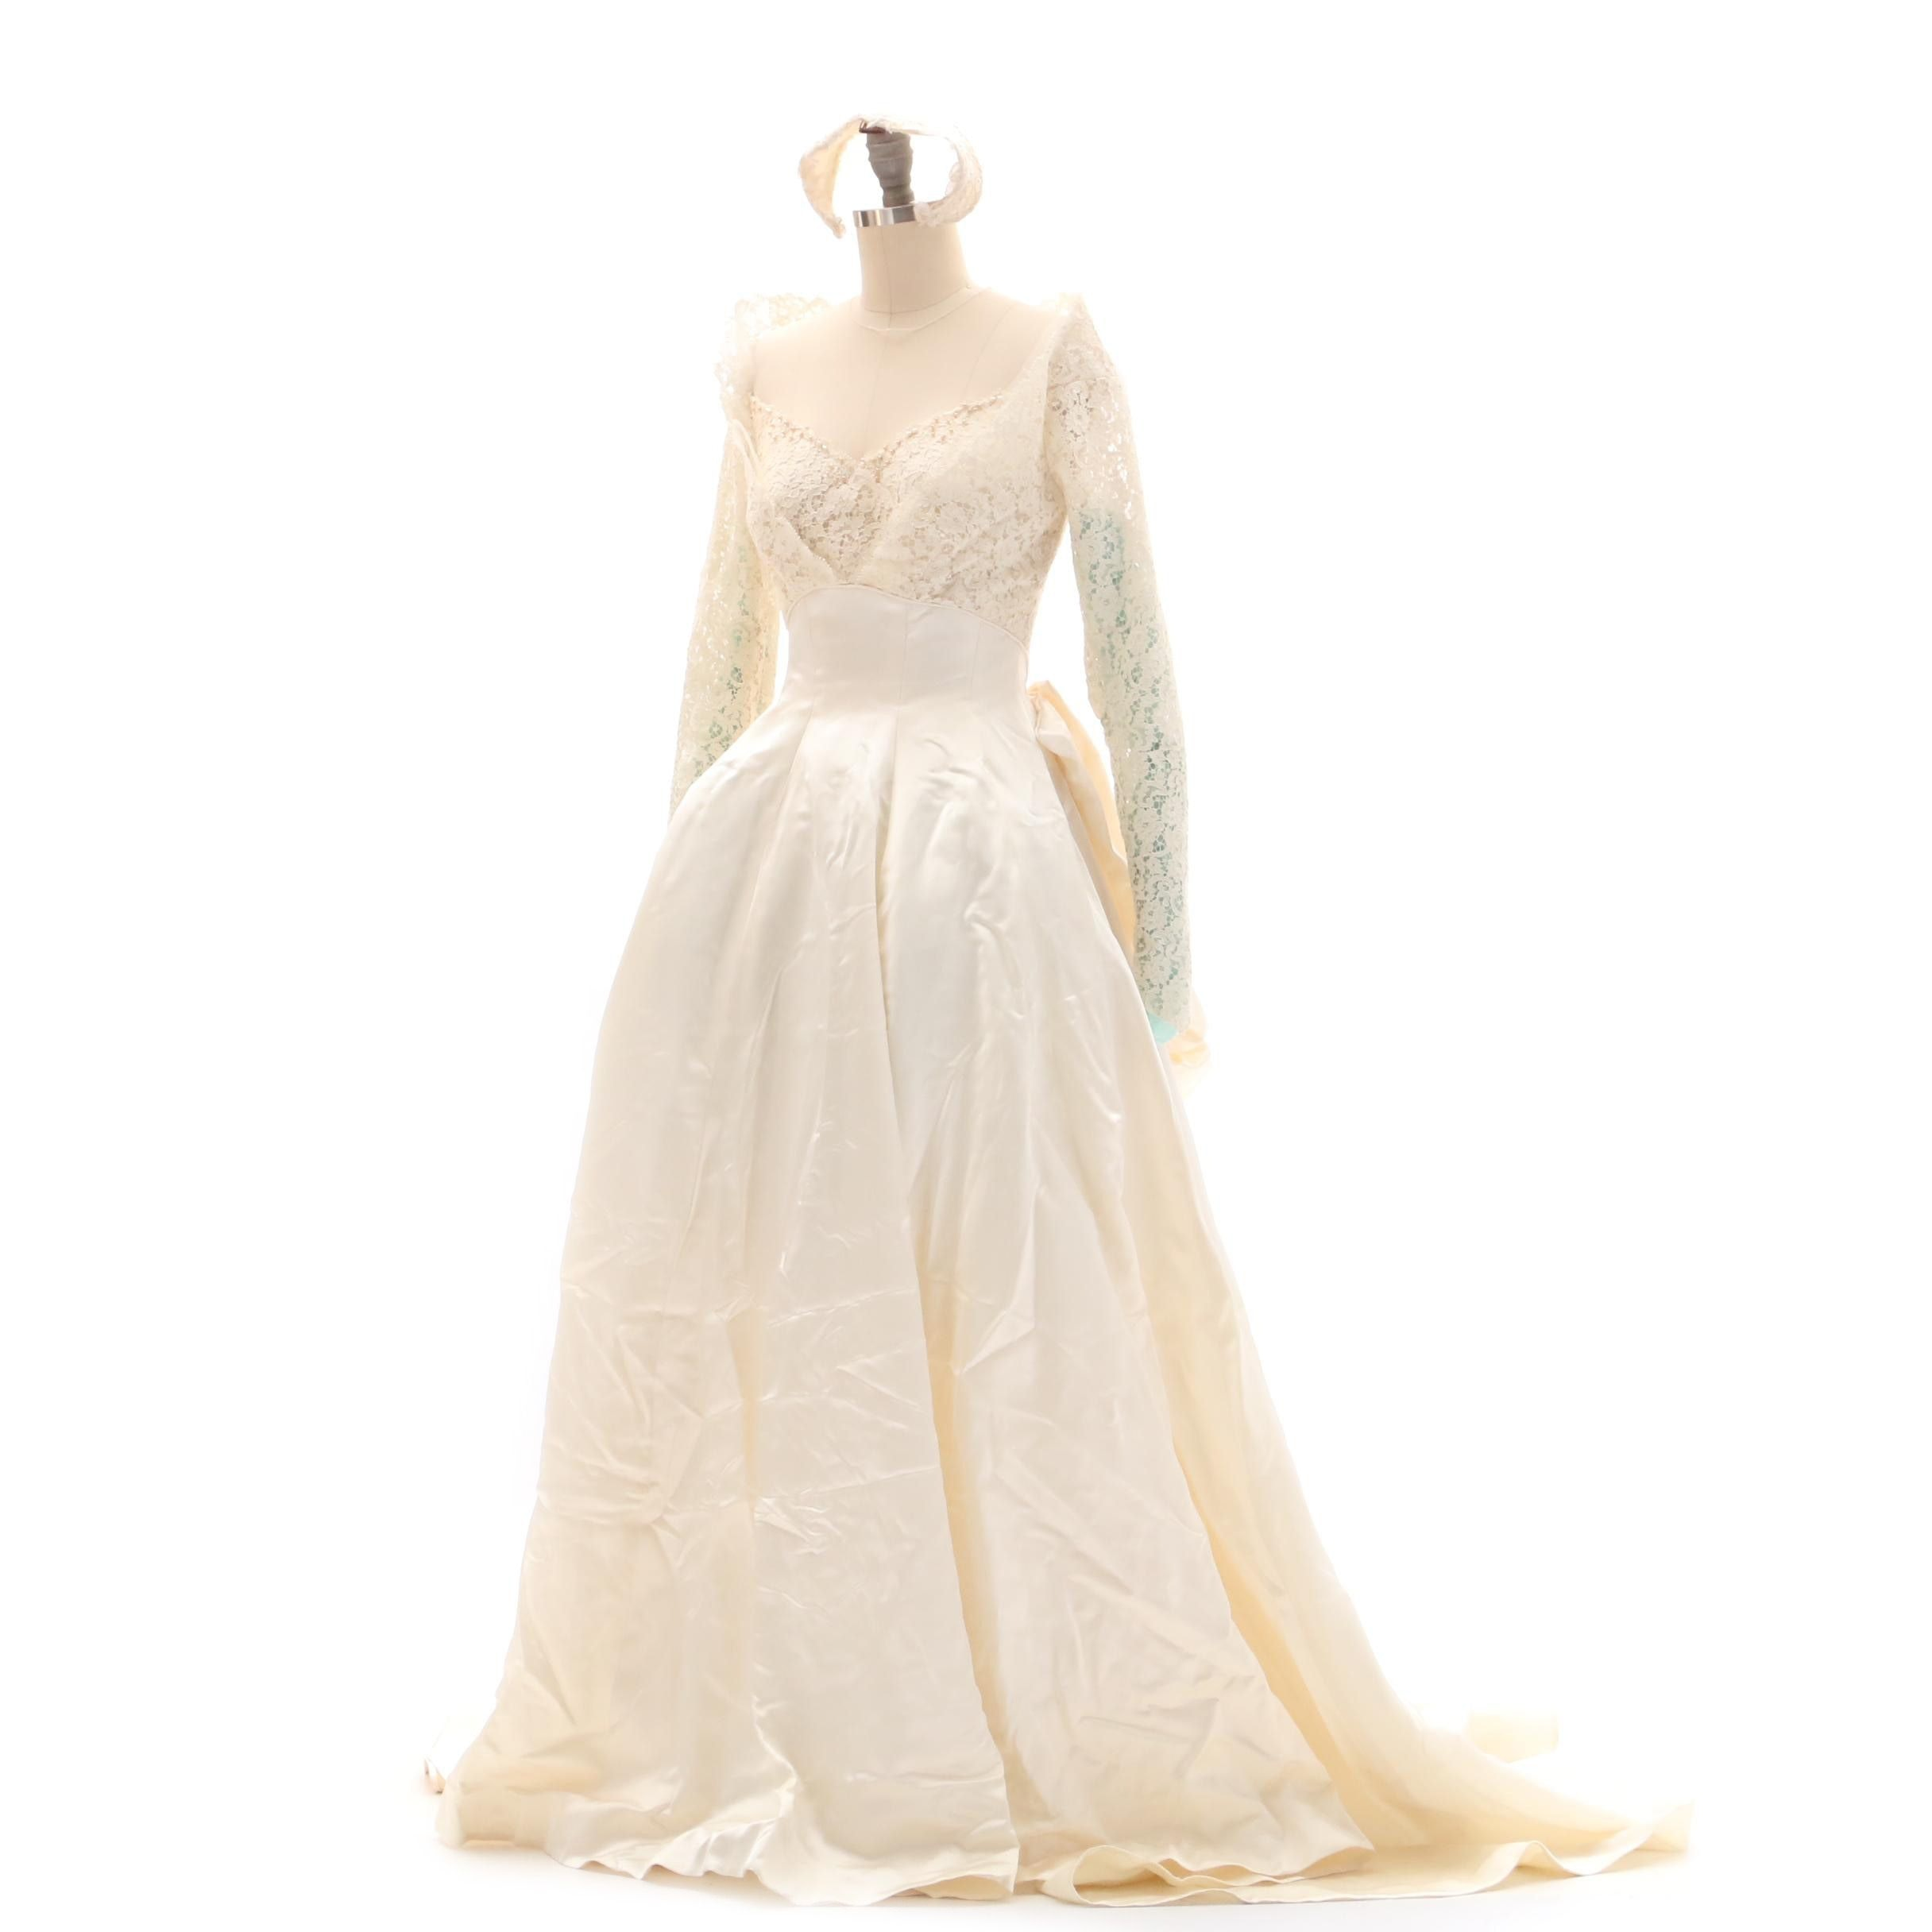 Vintage Gowns by Priscilla of Boston Wedding Gown with Lace and Matching Veil